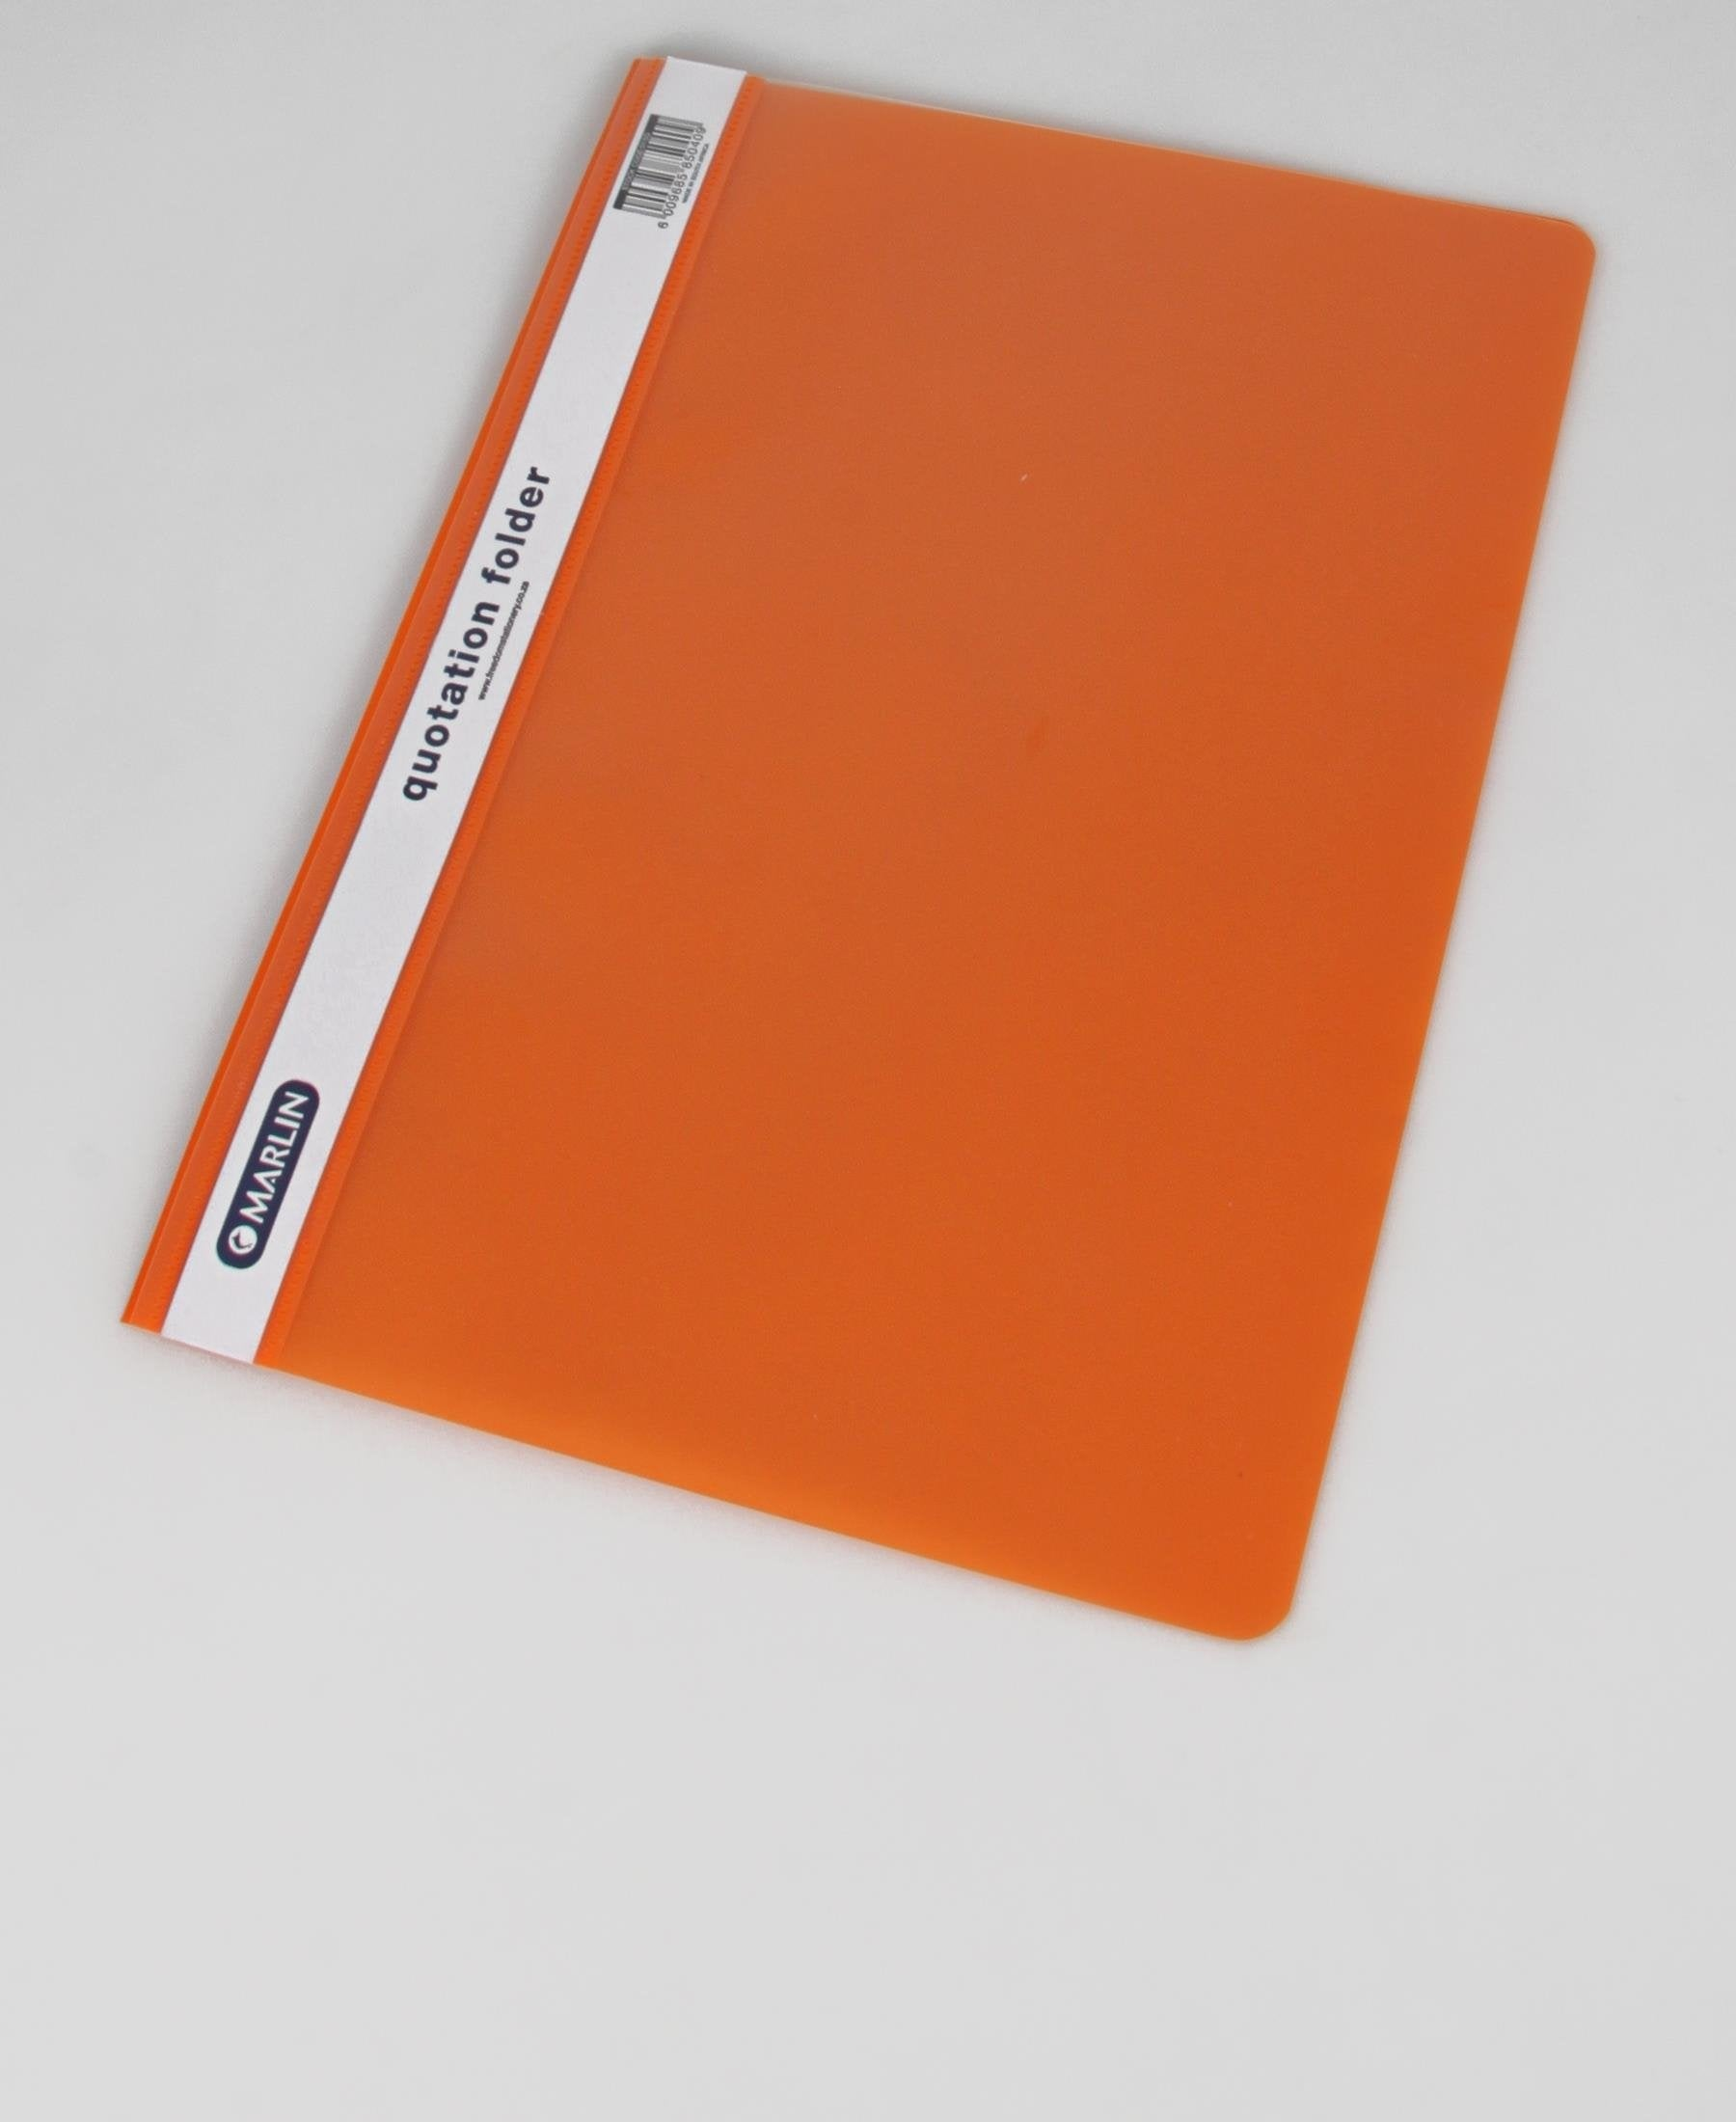 Marlin Quotation Folder - Orange